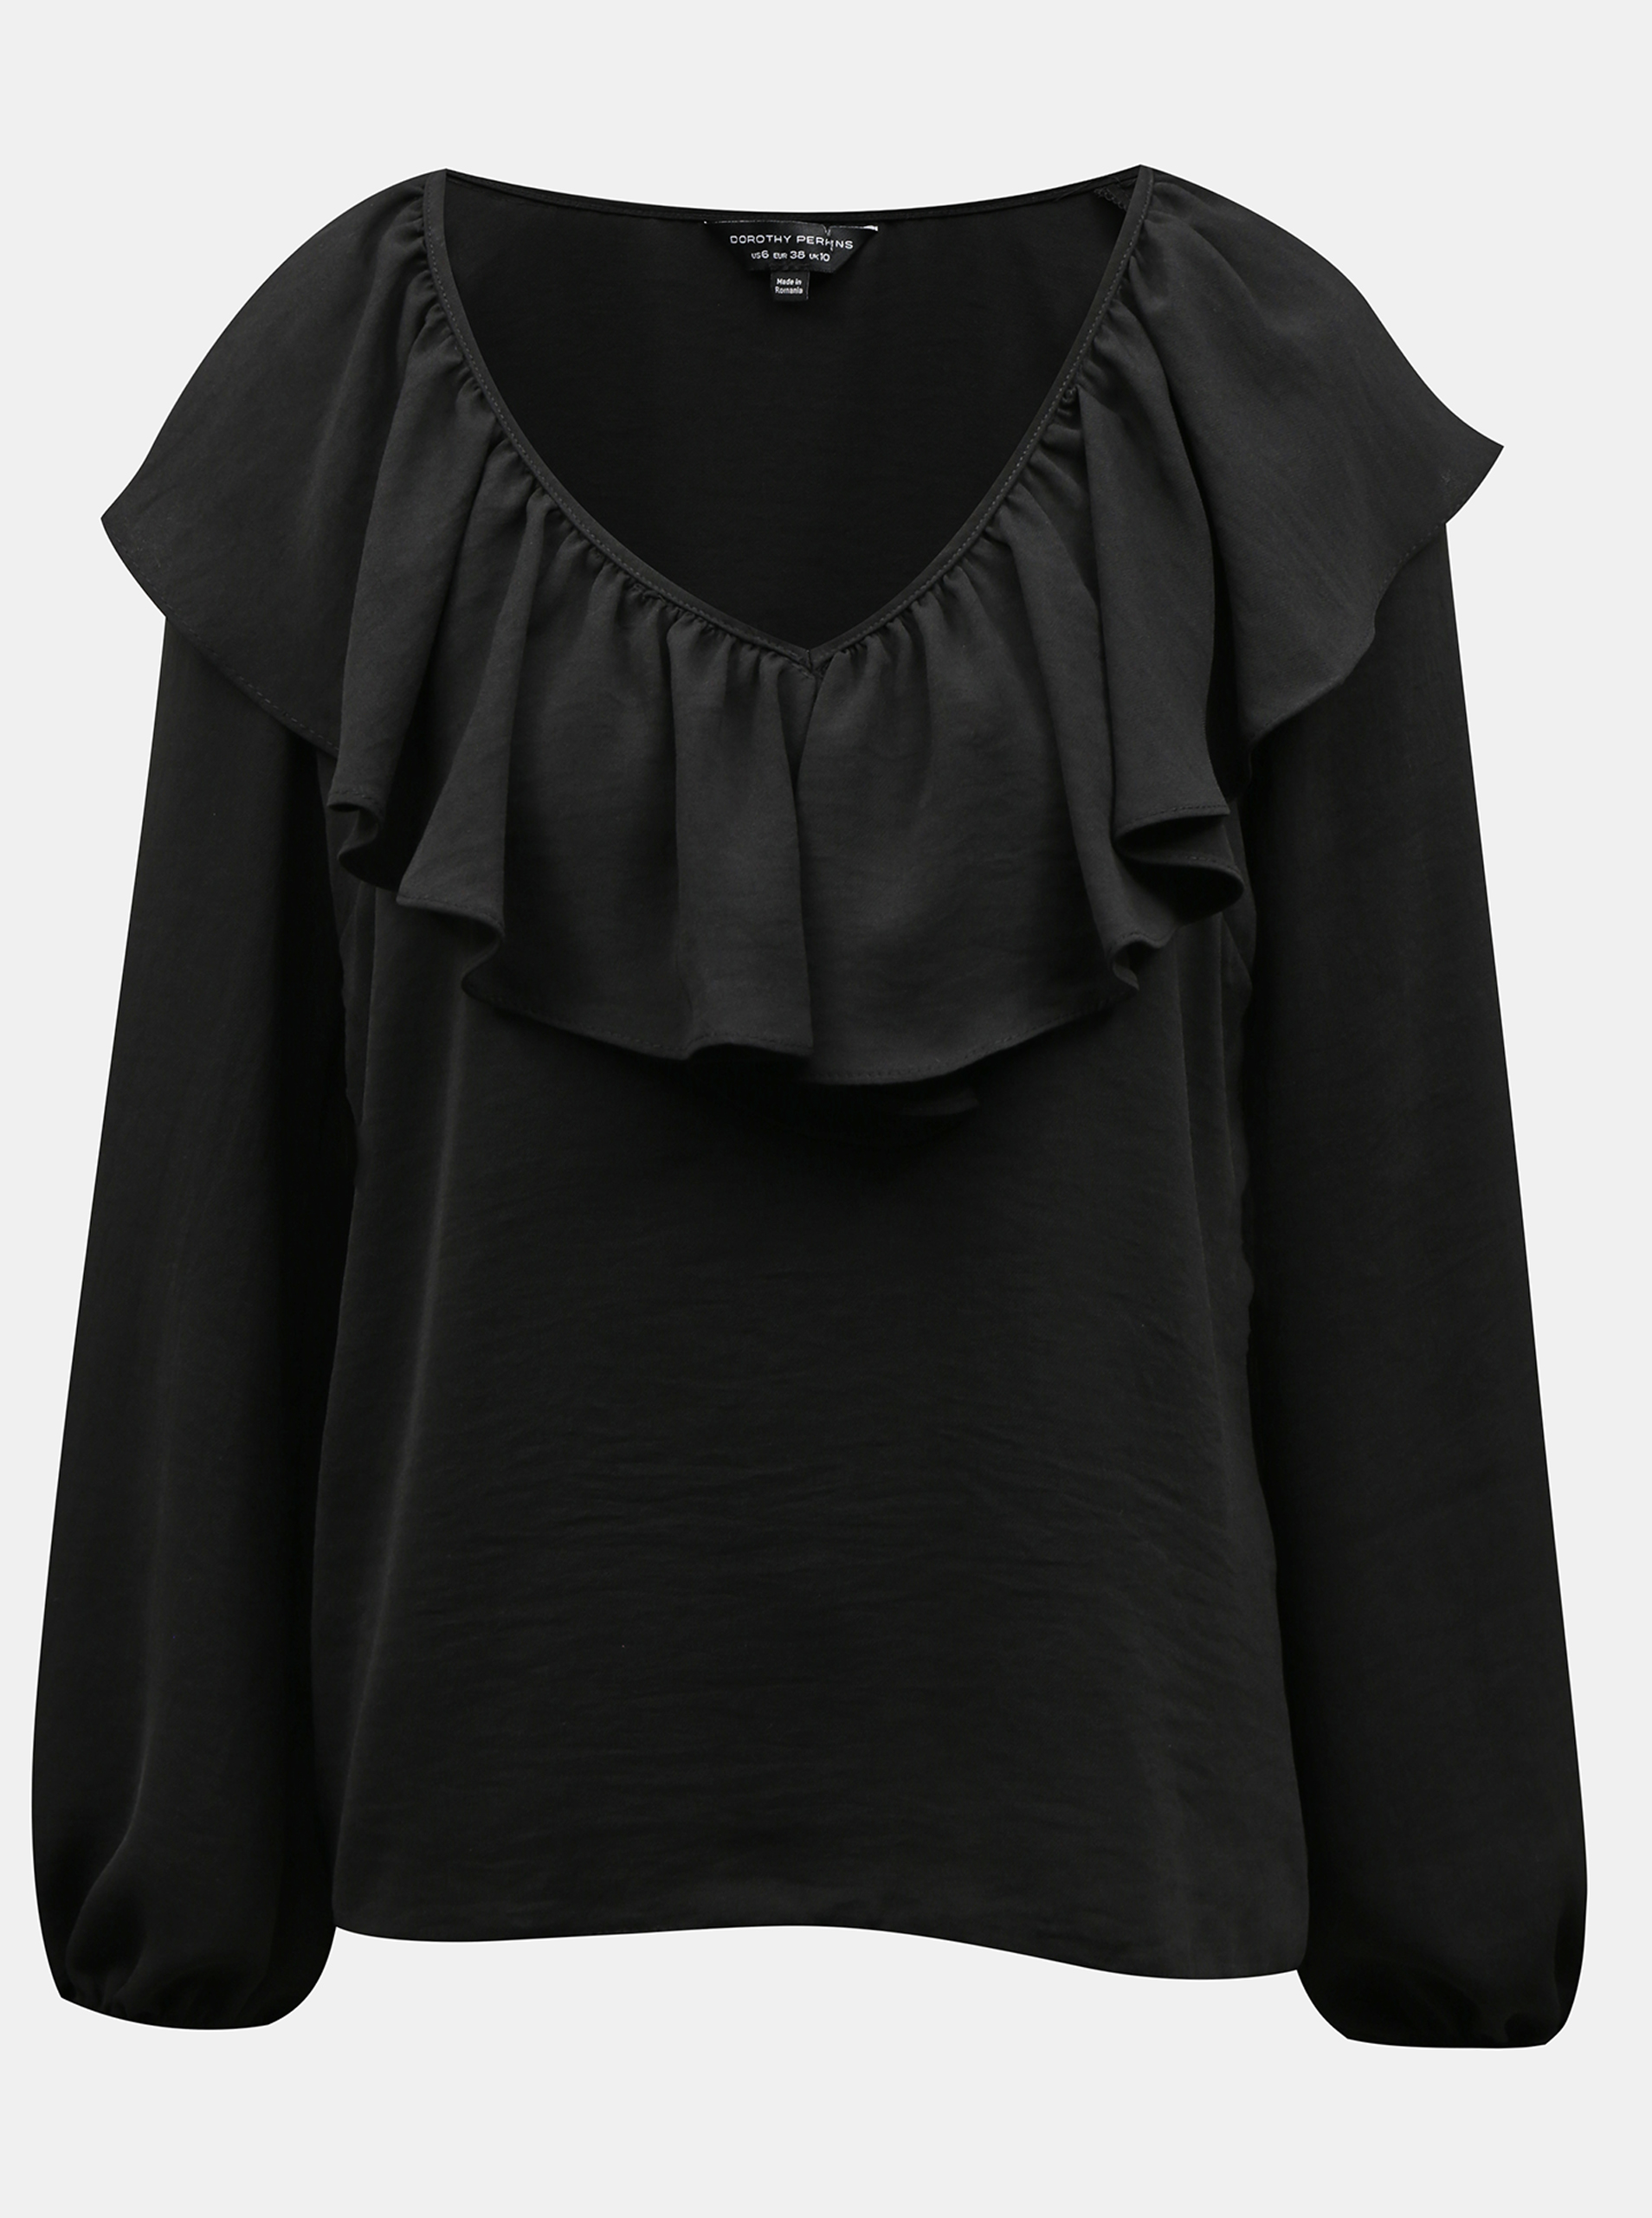 Black blouse with a ruffle Dorothy Perkins